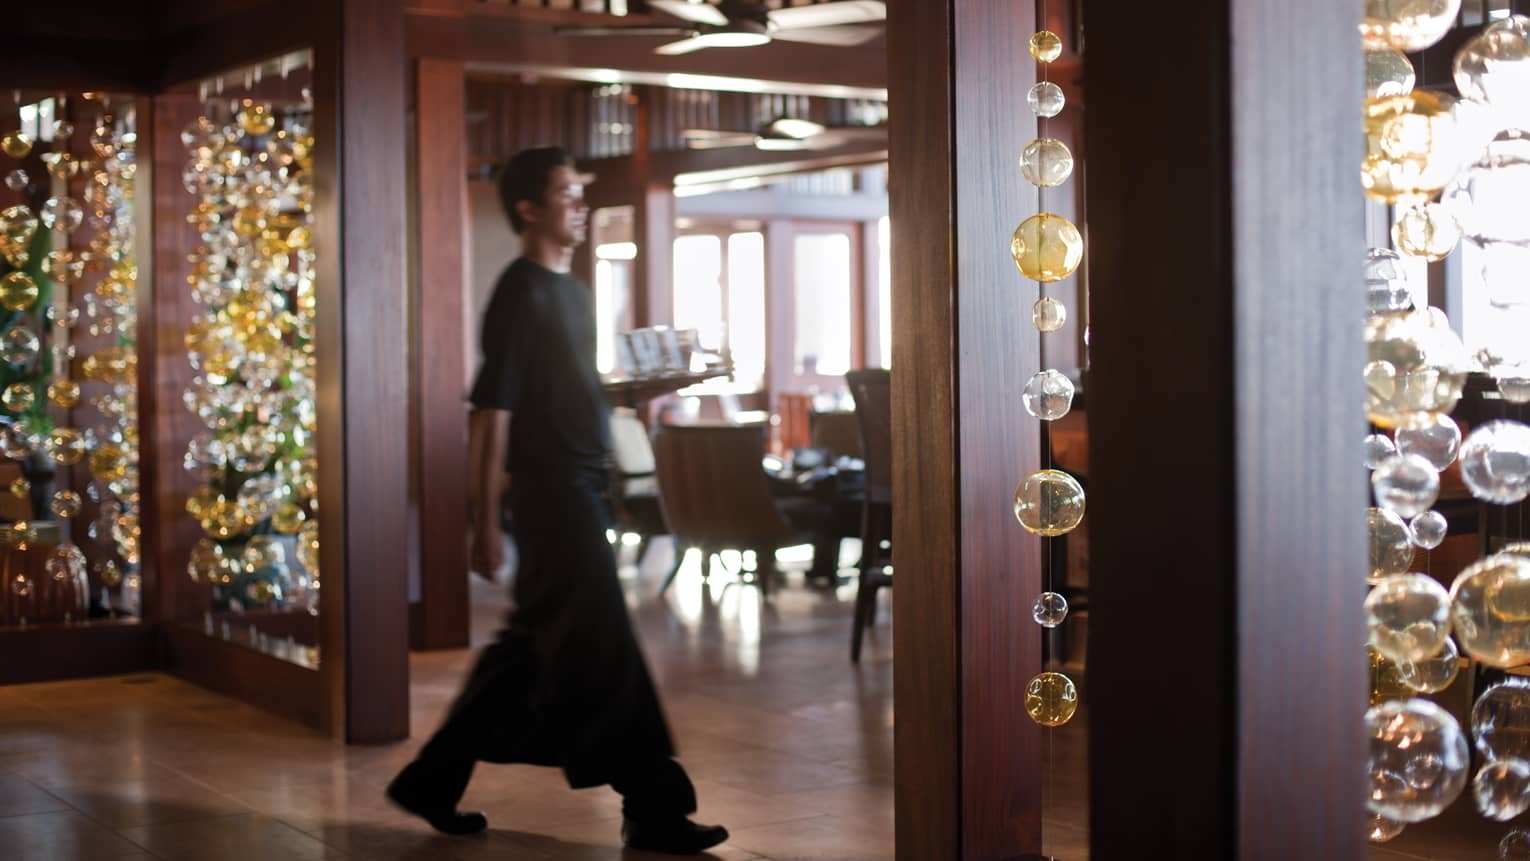 Server carries tray through ULU Sushi Lounge, past long glass bulb strings